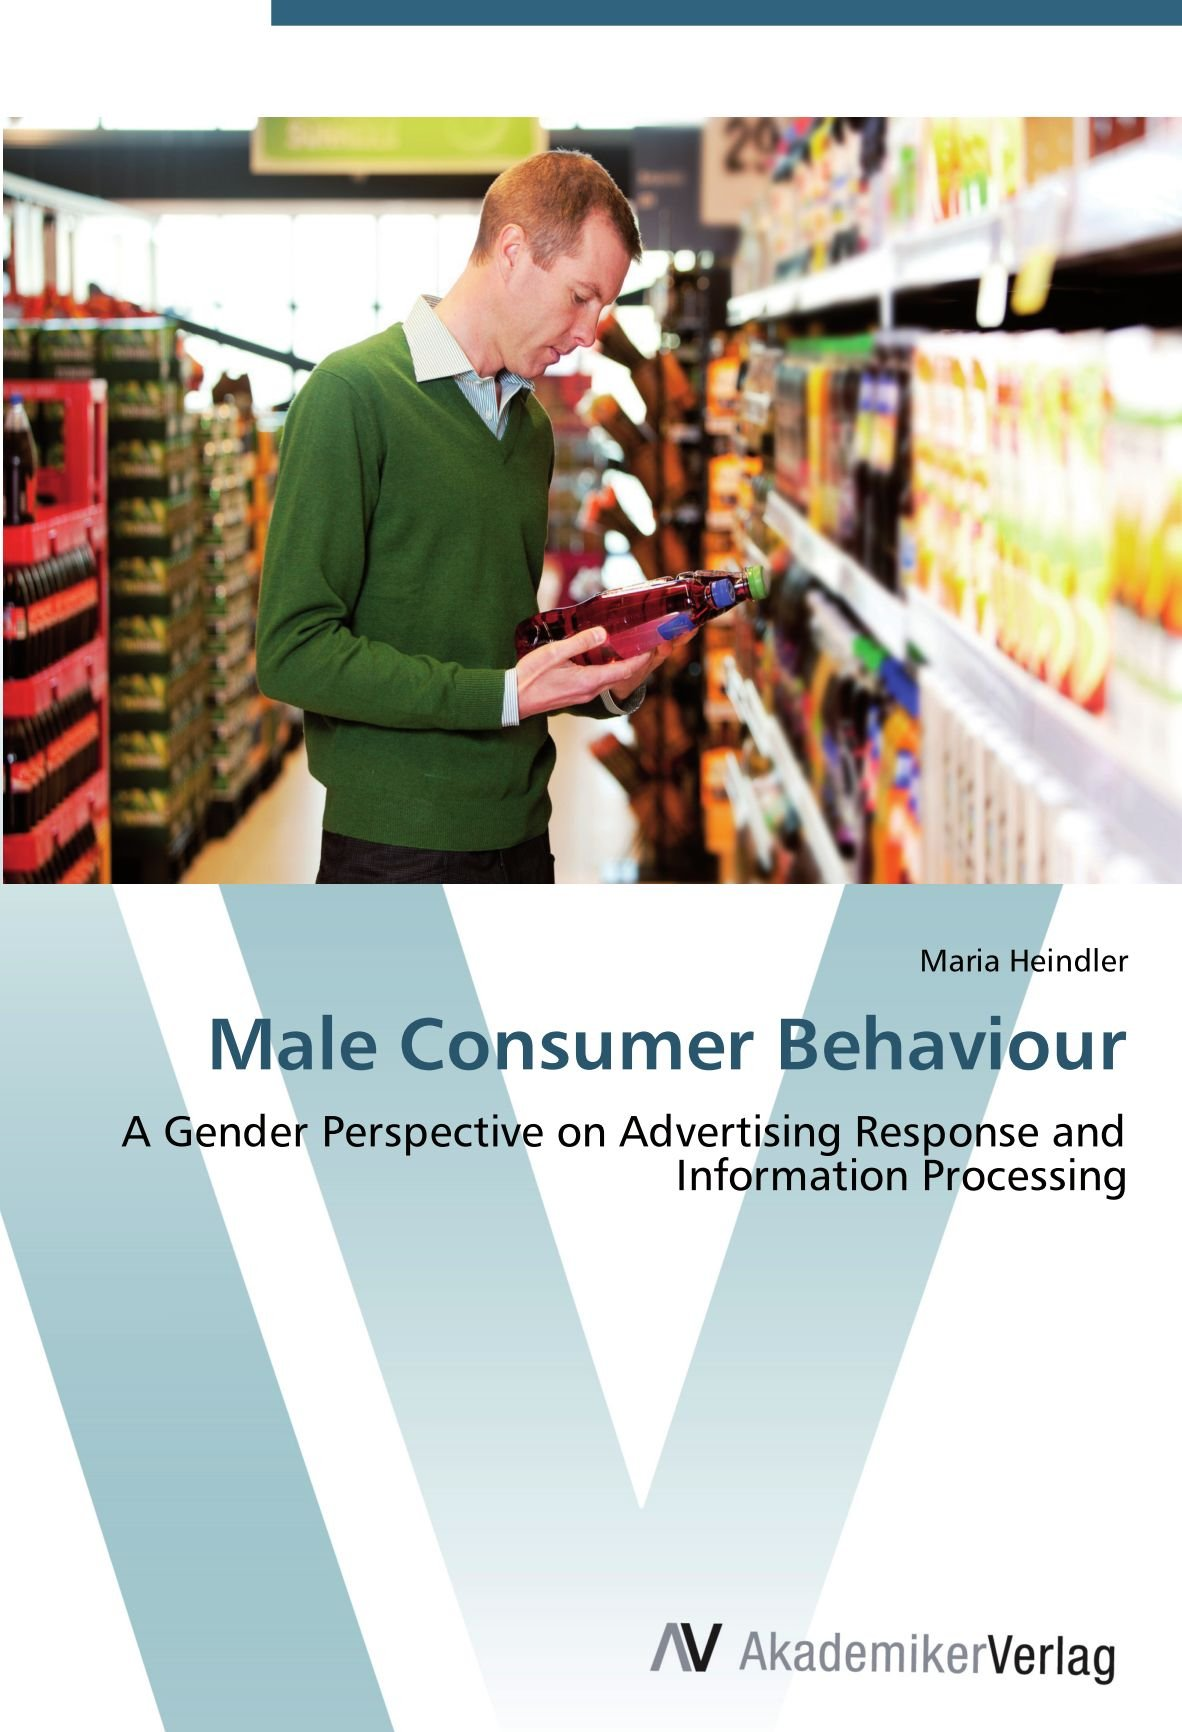 Male Consumer Behaviour: A Gender Perspective on Advertising Response and Information Processing PDF